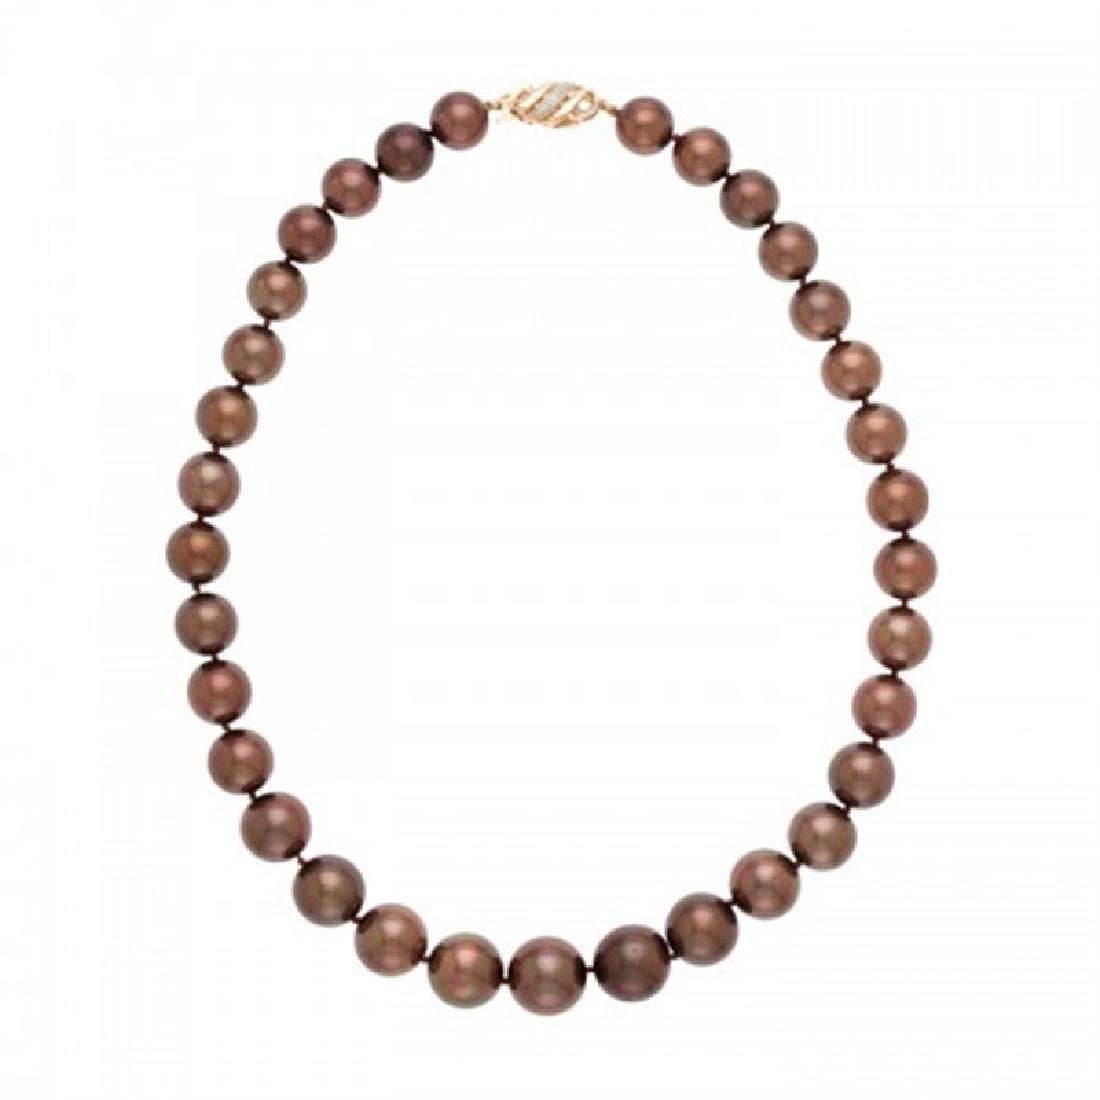 11.0-15.0mm Chocolate Tahitian Pearl Necklace